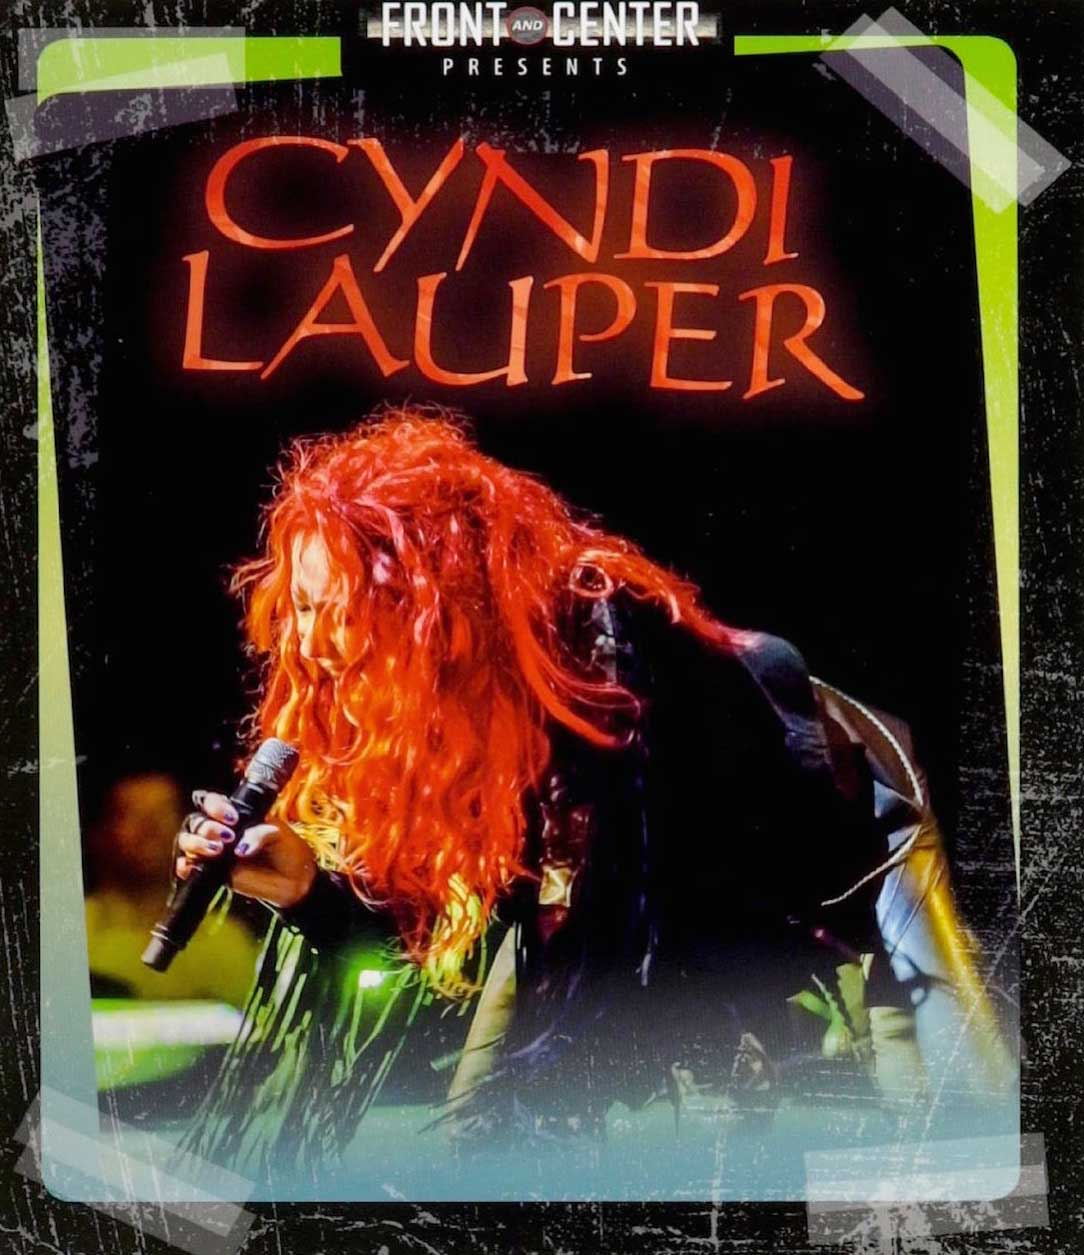 Cyndi Lauper: Front And Center Presents Torrent - Blu-ray Rip 1080p (2015)